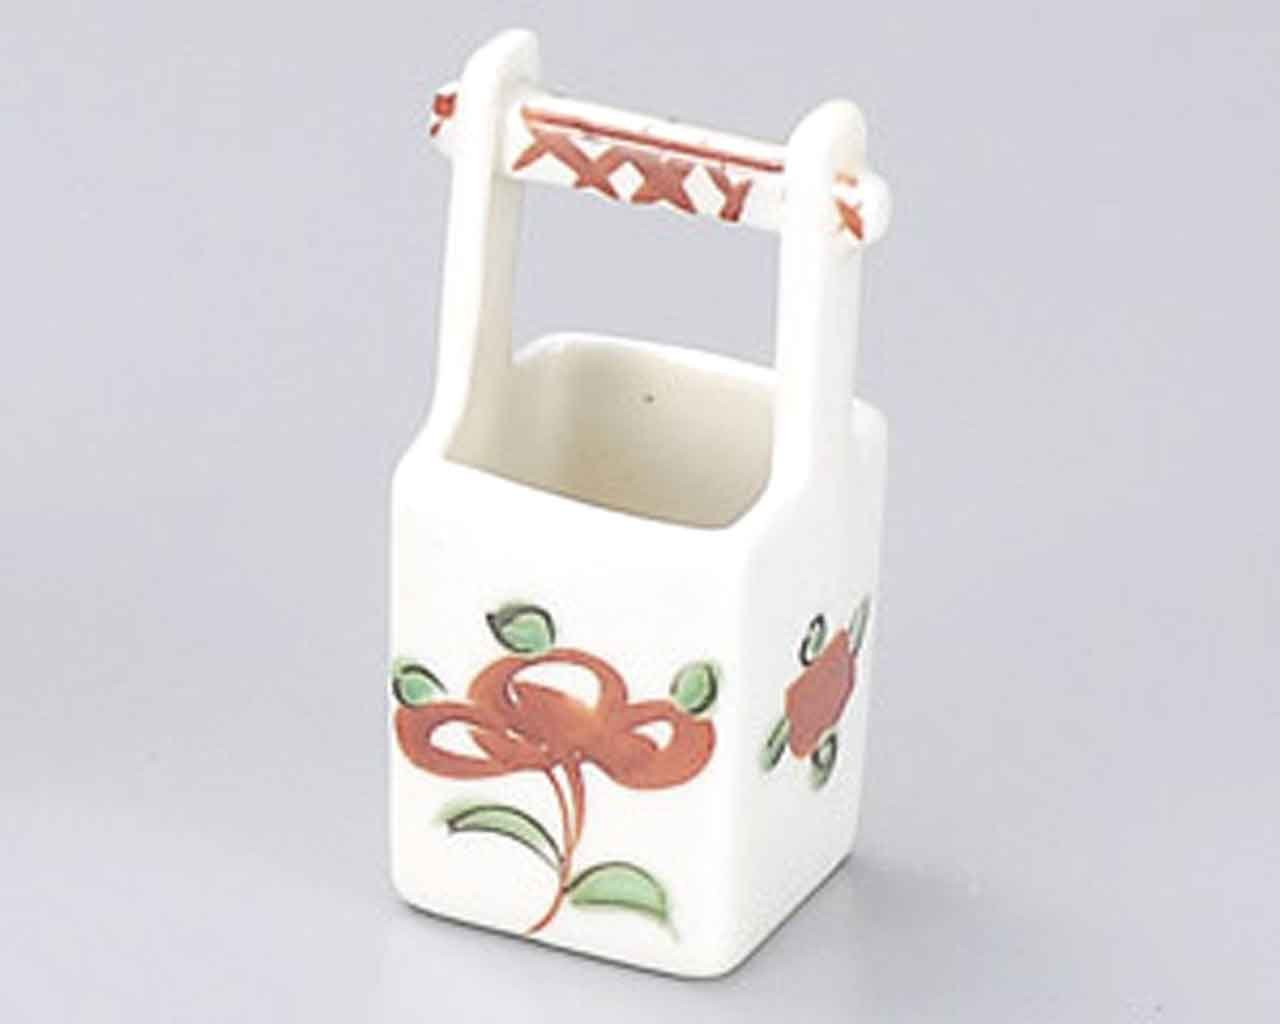 Akae Flower 1.9inch Set of 2 Toothpick holders White porcelain Made in Japan by Watou.asia